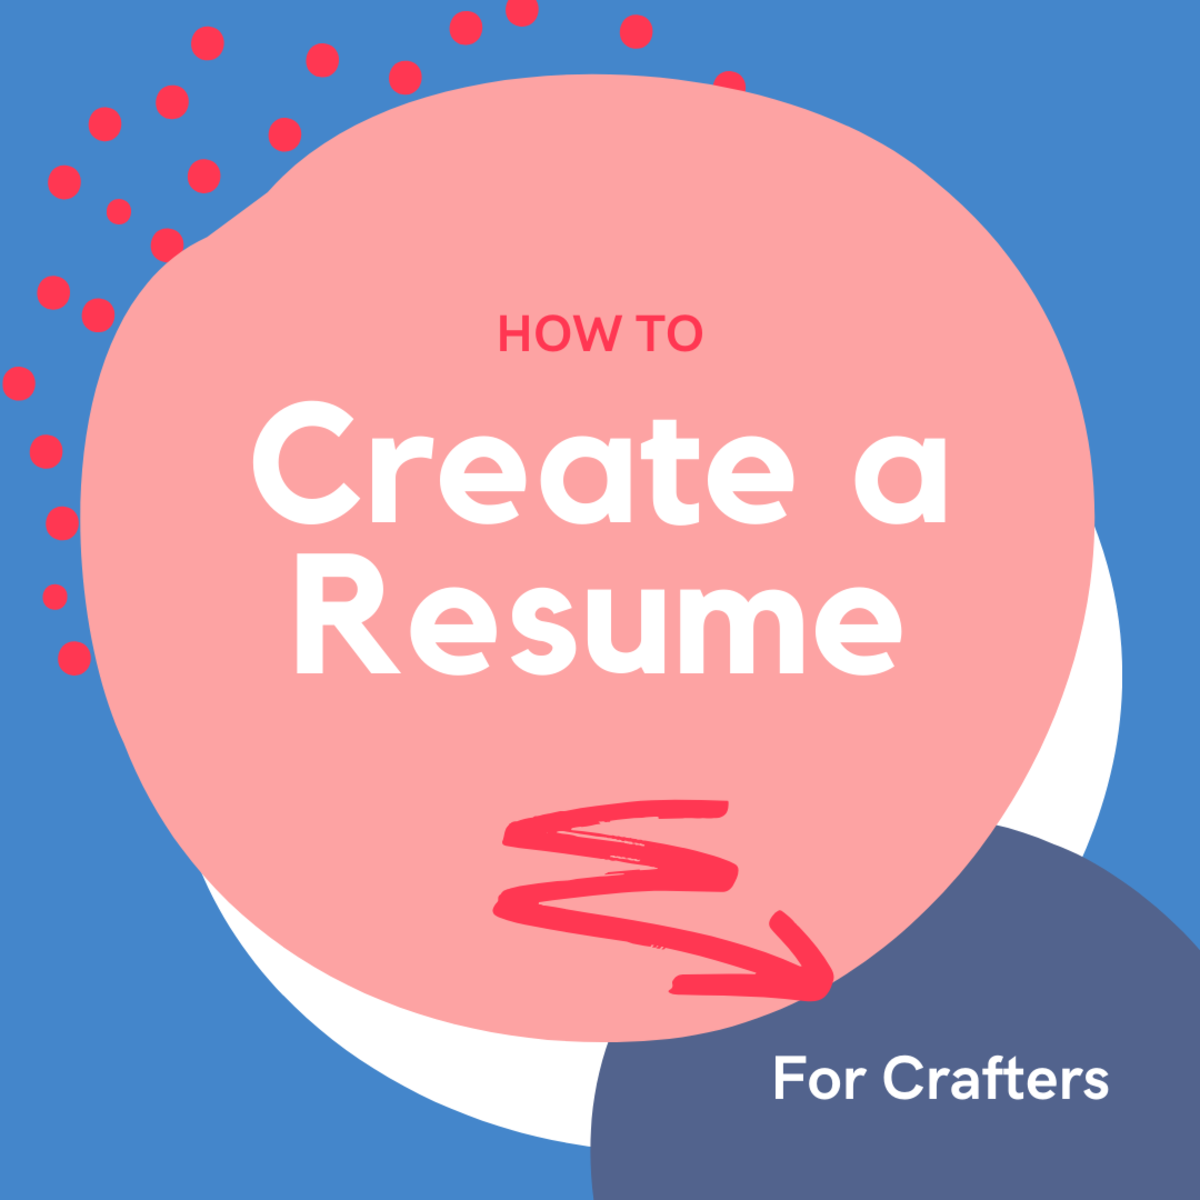 how to create a resume for crafters - toughnickel